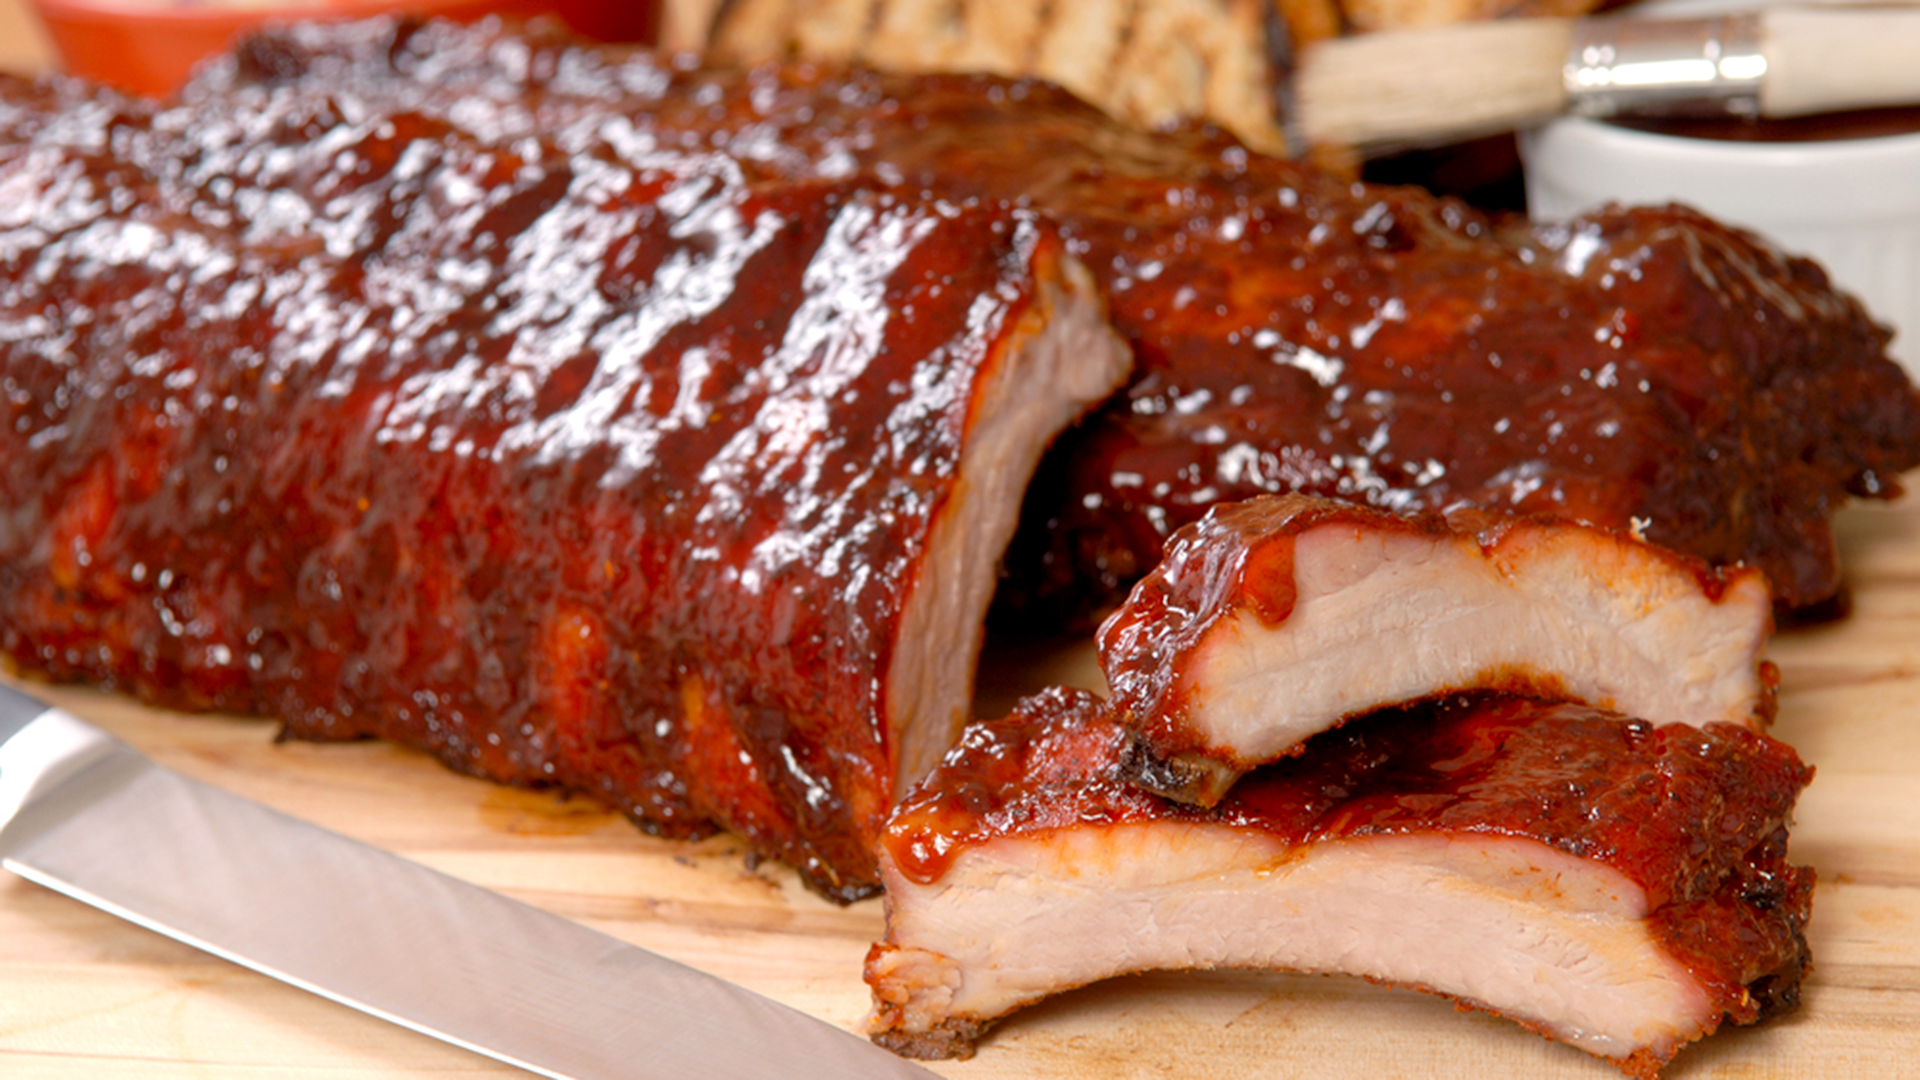 ... the best barbecued pork ribs with expert grilling tips - TODAY.com